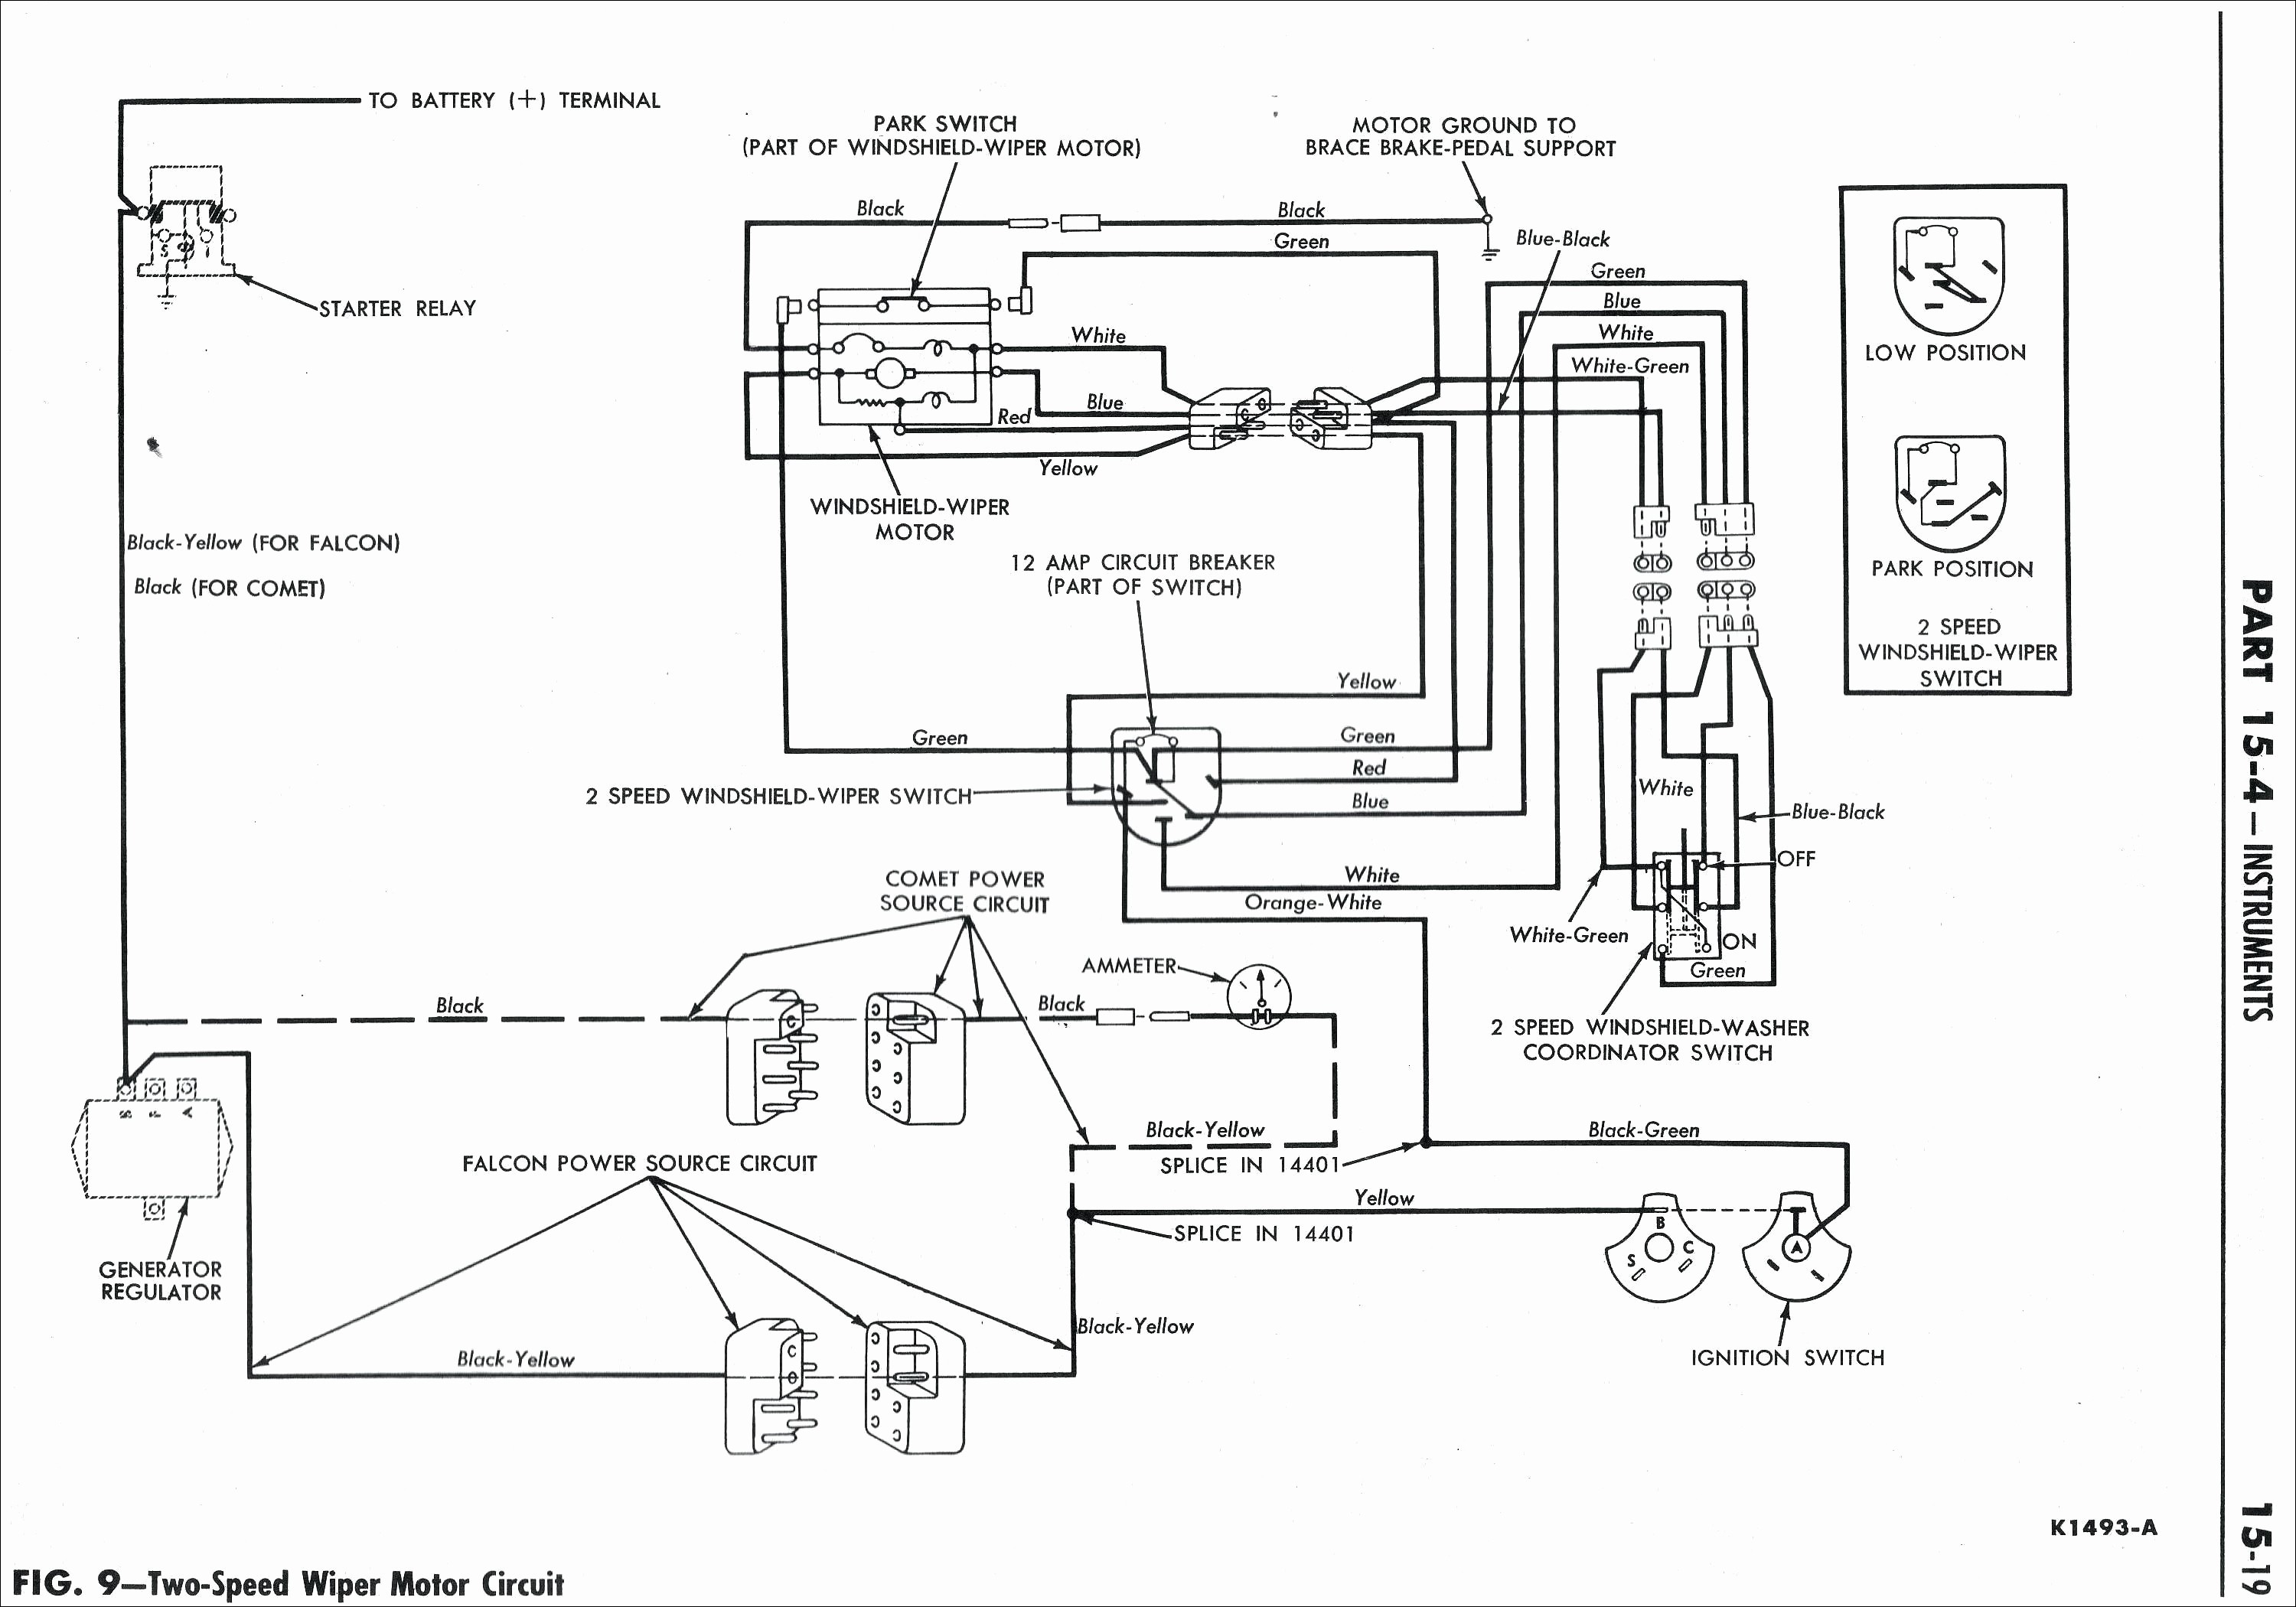 Wiring Diagram For Windshield Wiper Motor New Ford Taurus Windshield Wiper Motor Diagram Circuit Wiring